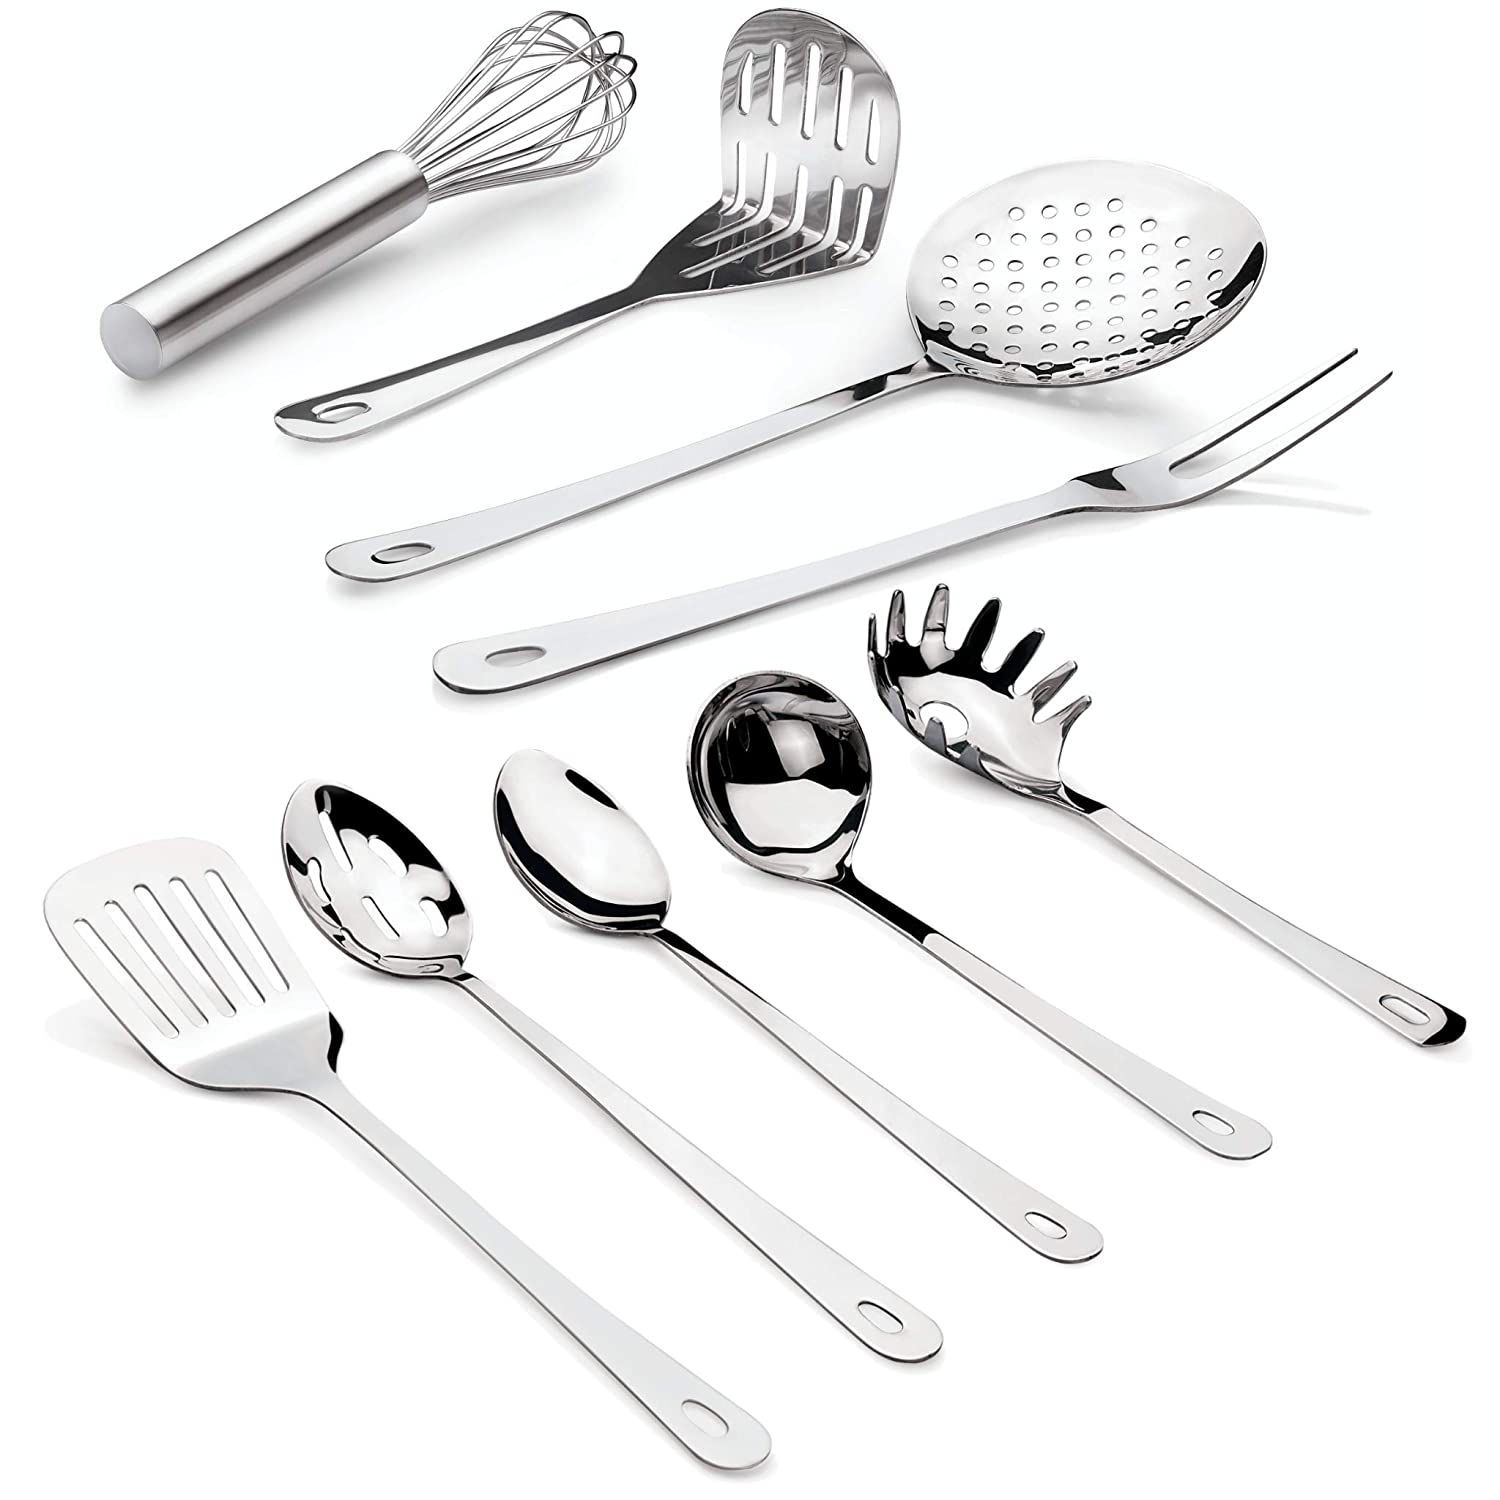 Complete 9 Piece Stainless Steel Cooking & Serving Set - Slotted Turner & Spoon, Solid Spoon, Large Fork, Ladle, Skimmer, Whisk, Potato Masher & Pasta Server - Heavy Gauge Durability - Mirror Finish